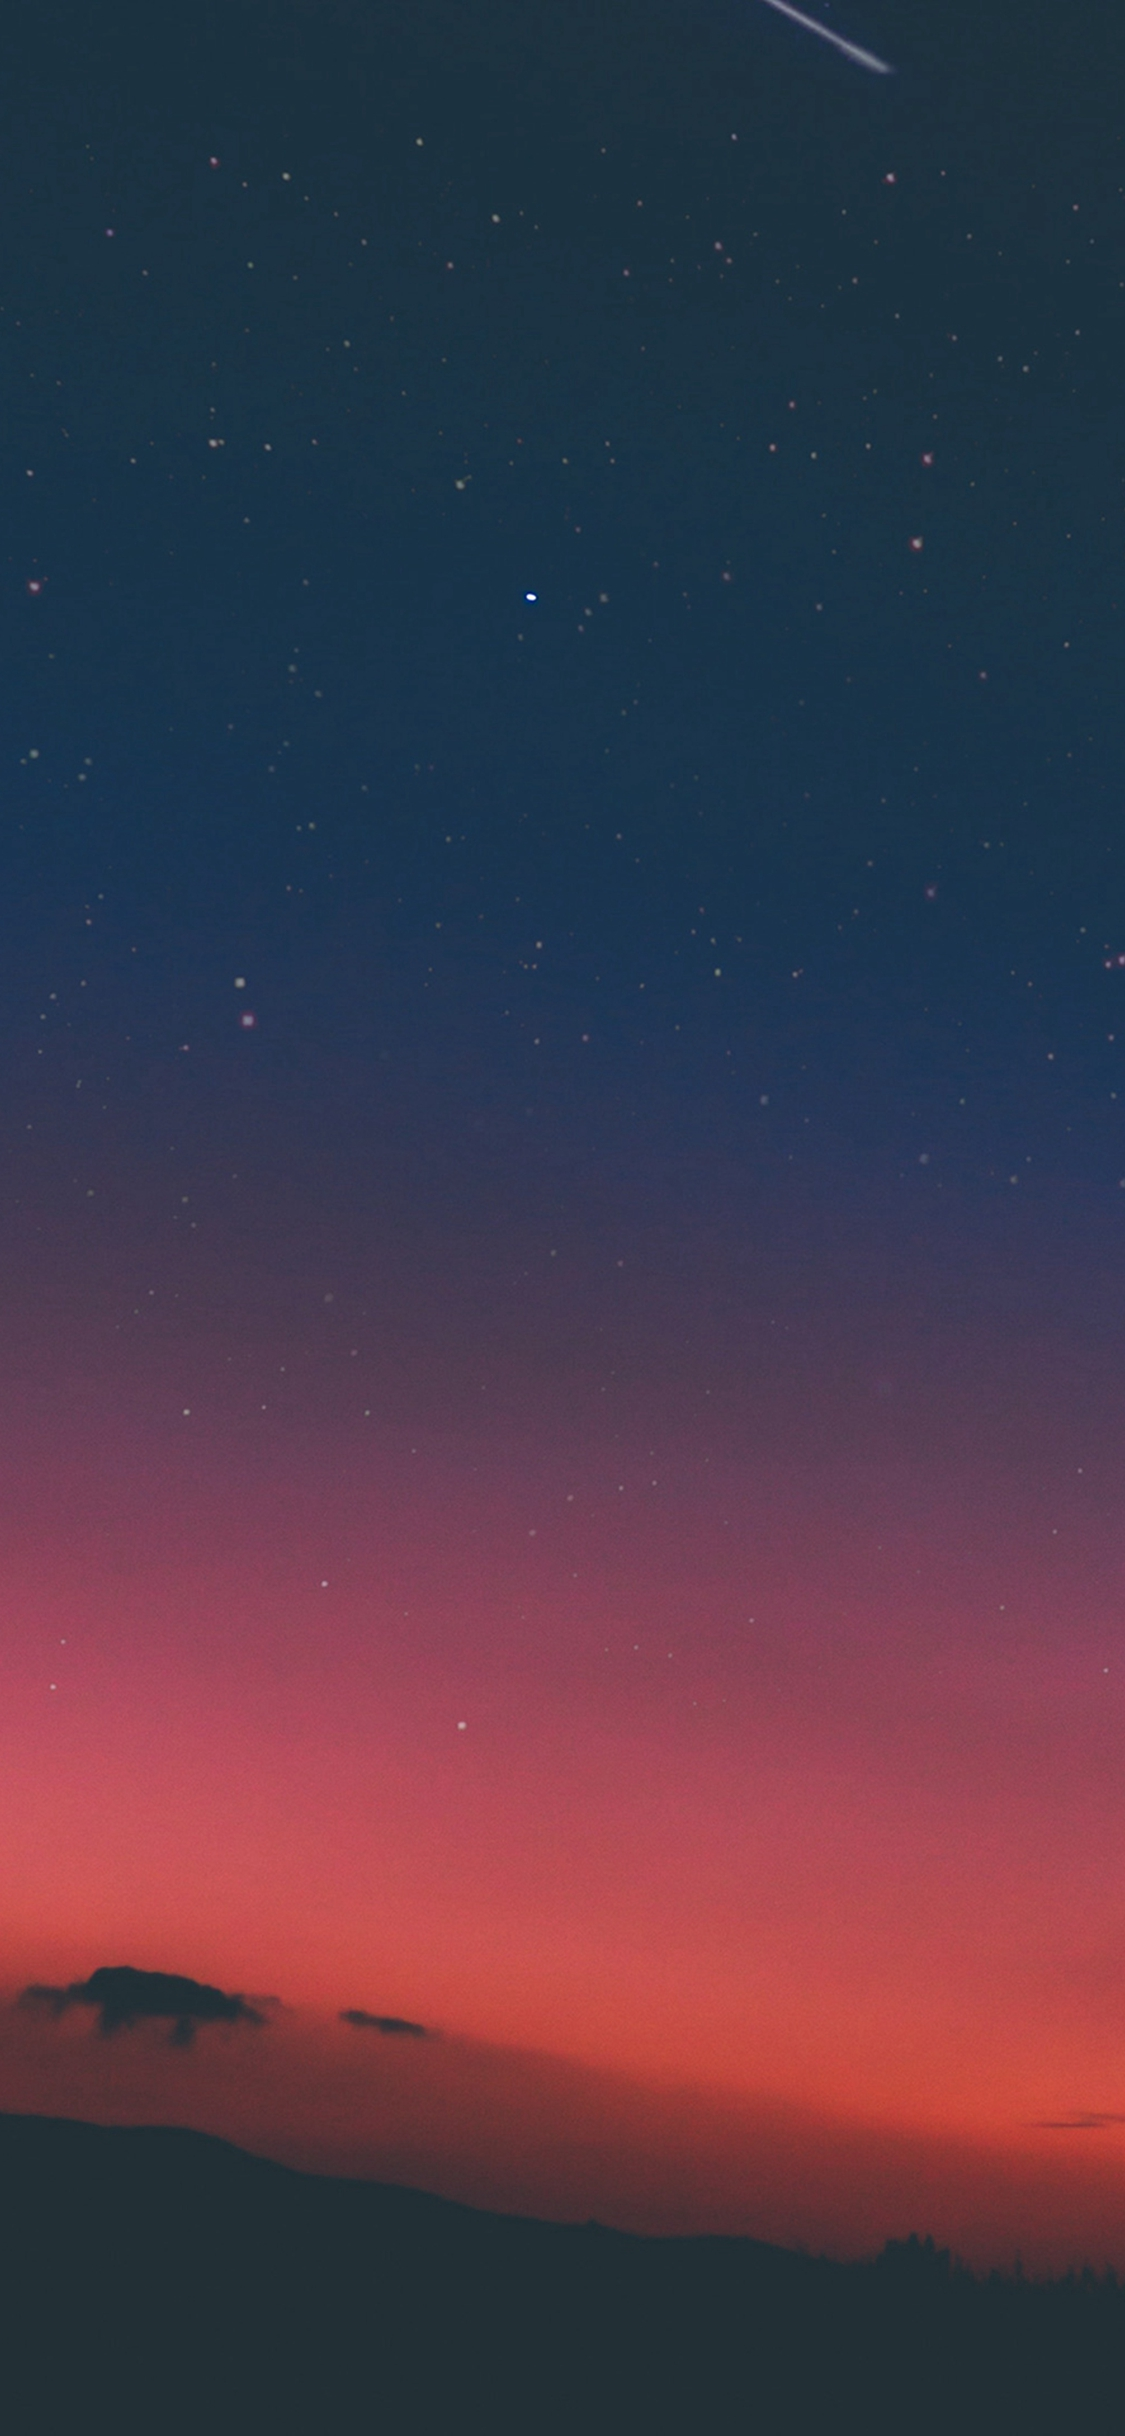 Free Download Apple Iphone X Hd Wallpapers 100 1125x2436